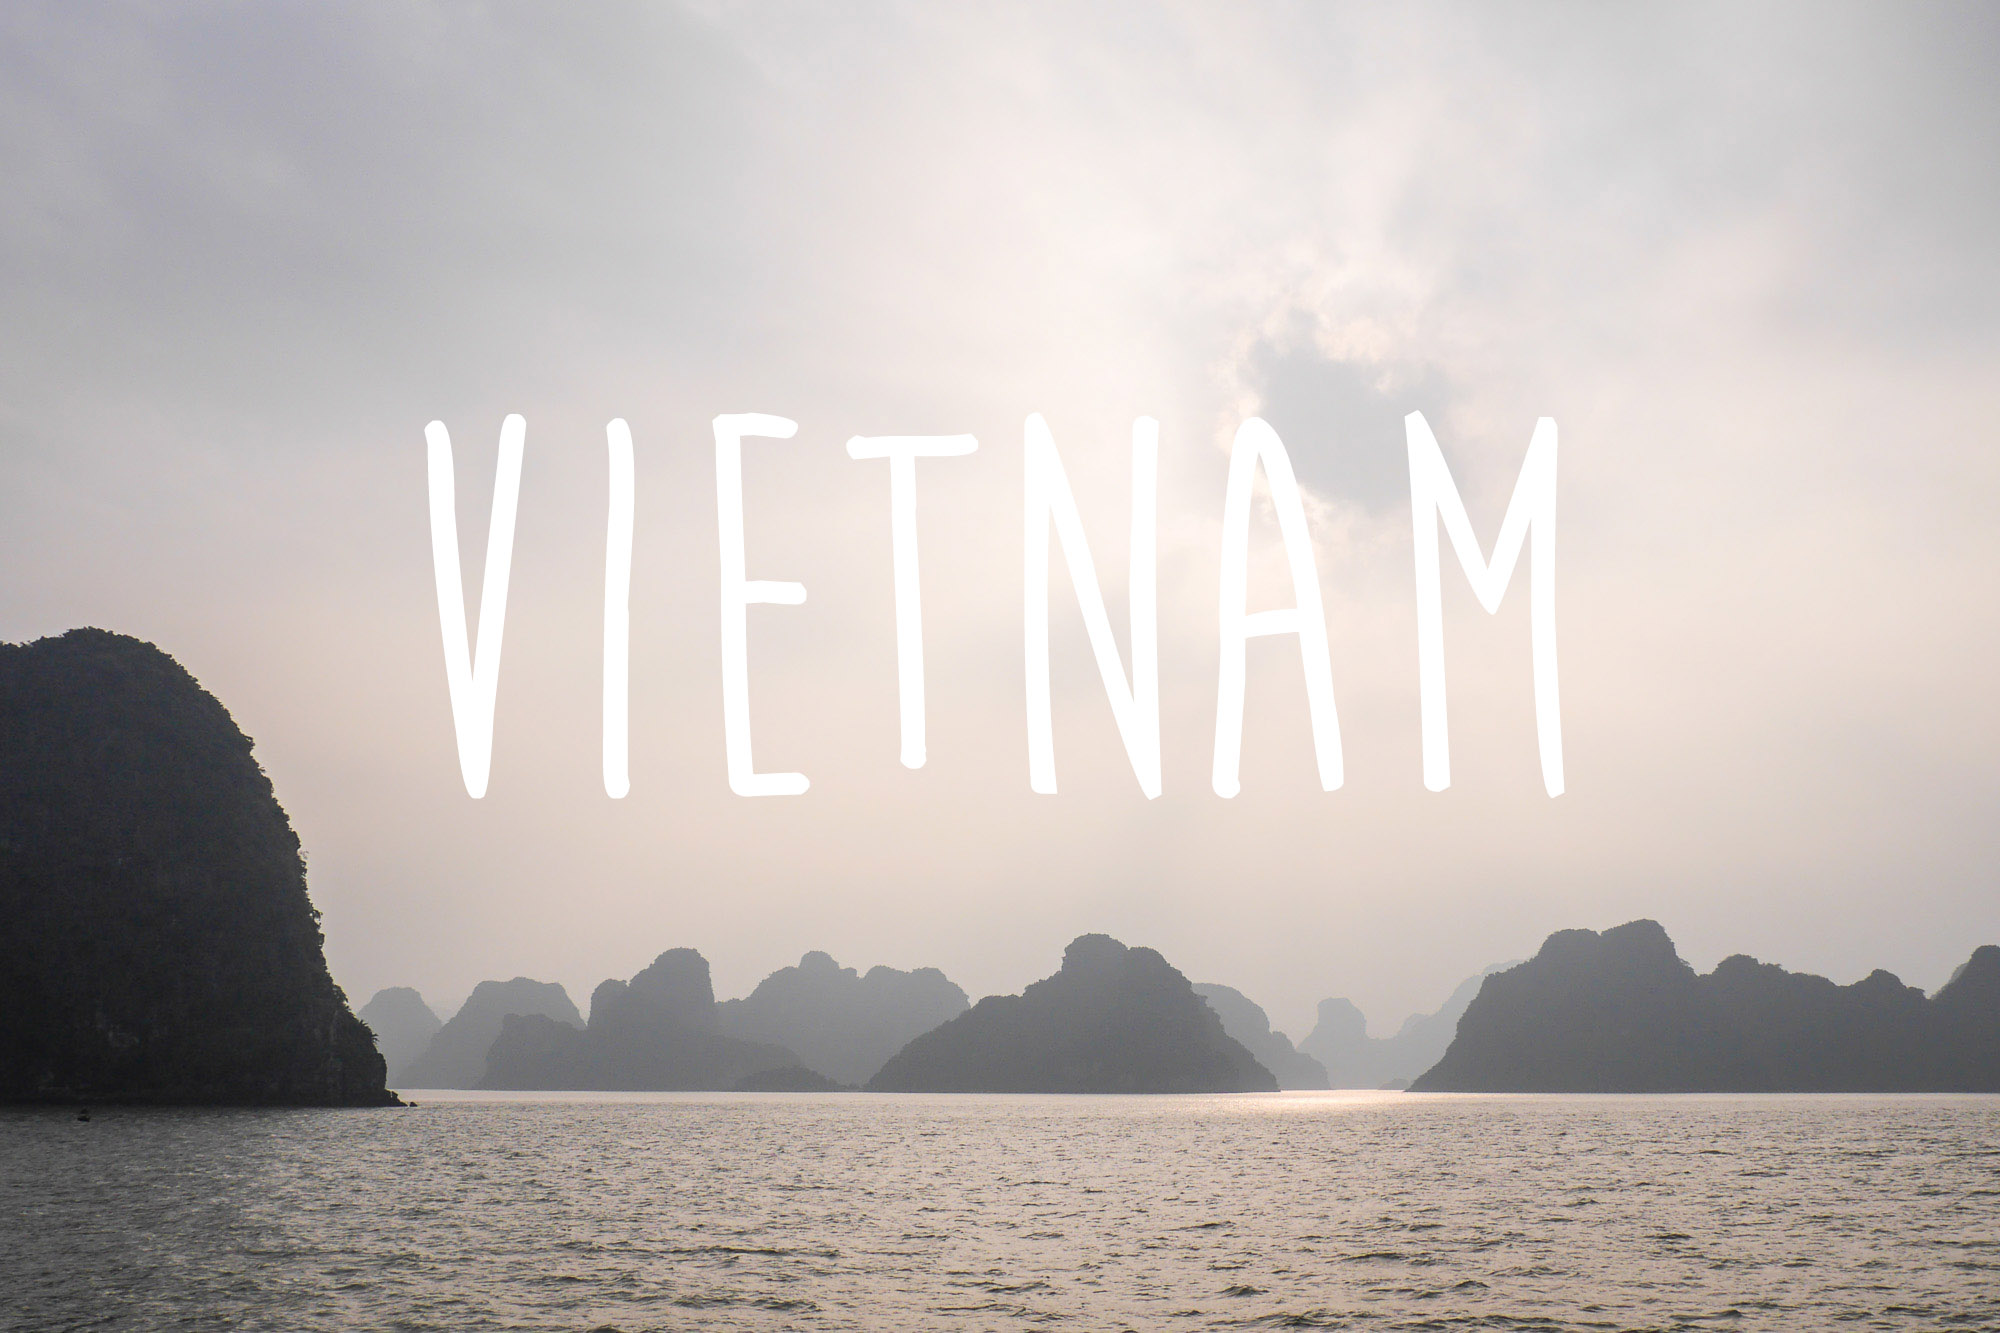 We went to Vietnam {Video}